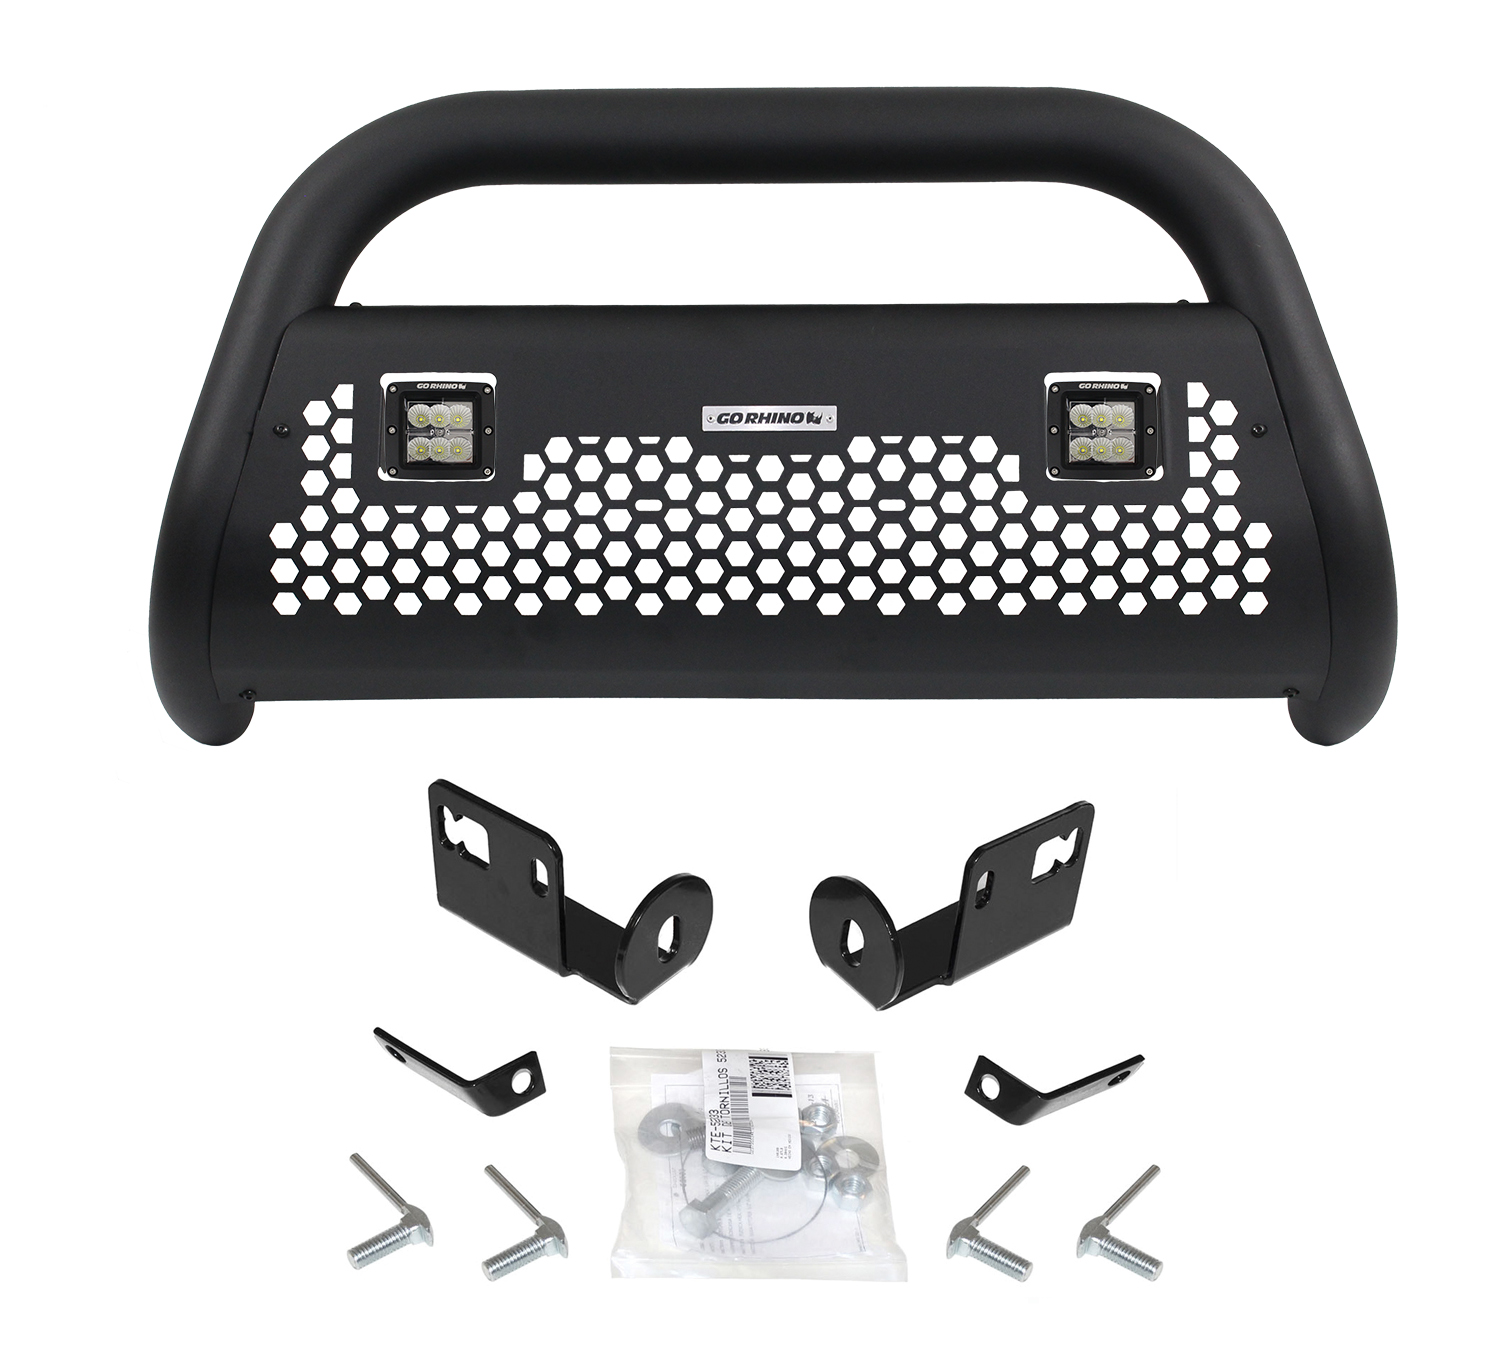 Go Rhino 55282LT Bull Bar Rhino! Charger- RC2 Light Ready Black Textured Powder Coated Steel; 3 Inch Diameter; With 2 Central 3 Inch Square Lights; With Hexagonal Mesh Skid Plate - image 1 de 1